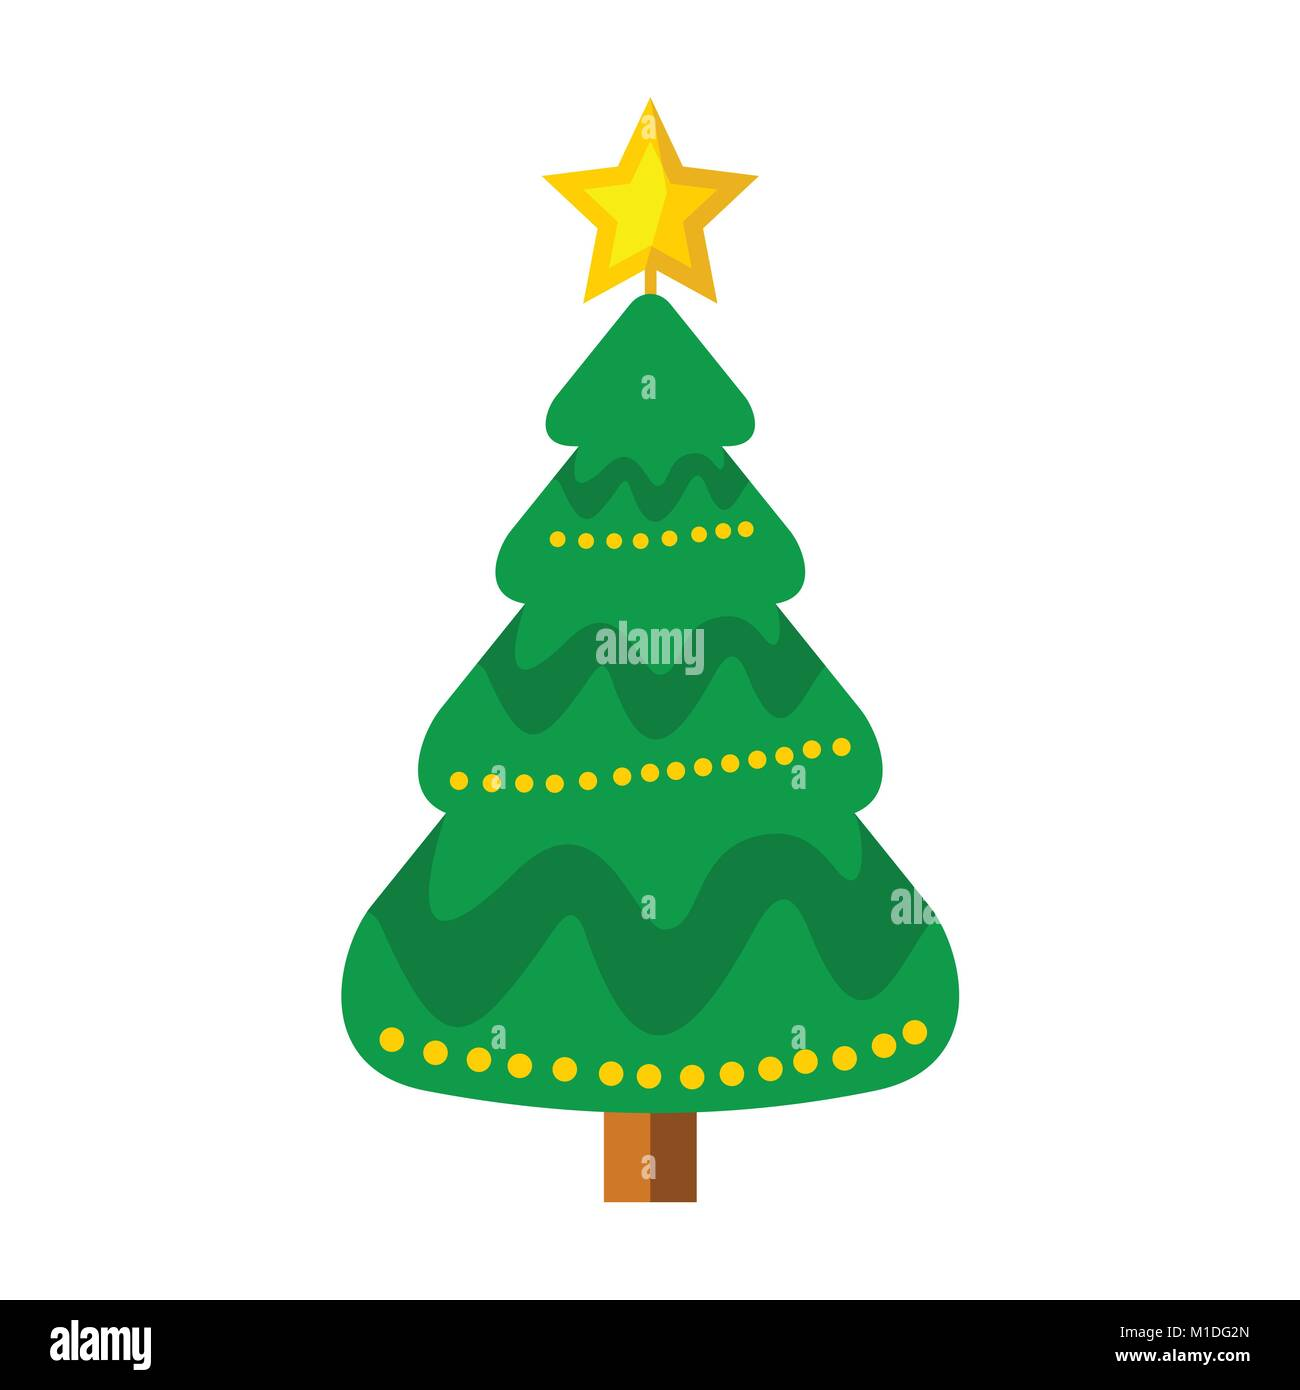 Christmas Tree Illustration.Cartoon Christmas Tree Vector Graphic Illustration Sign